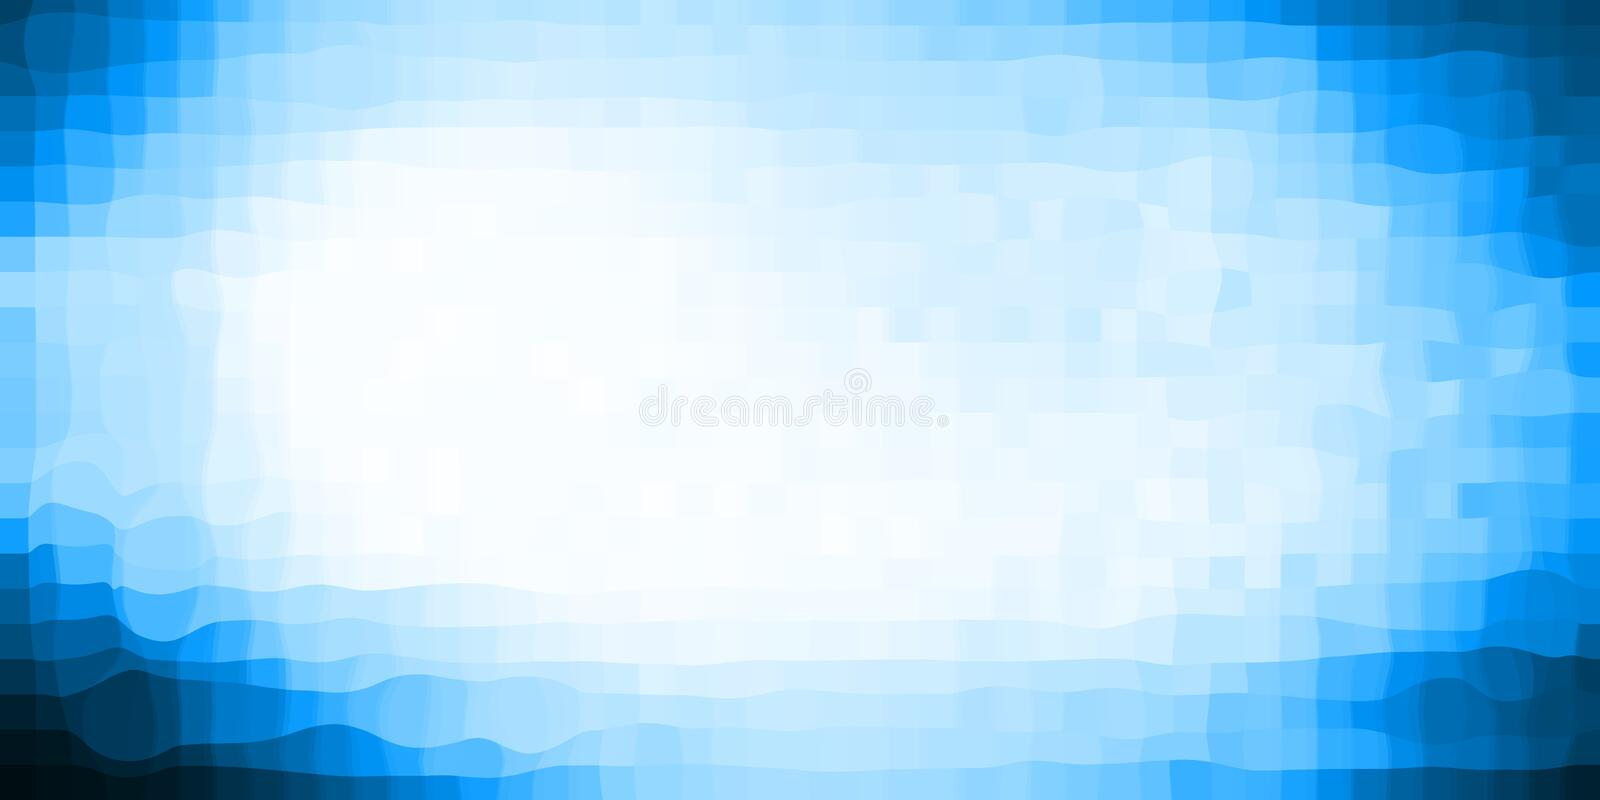 Fond de pointe abstrait bleu de pixelate illustration stock